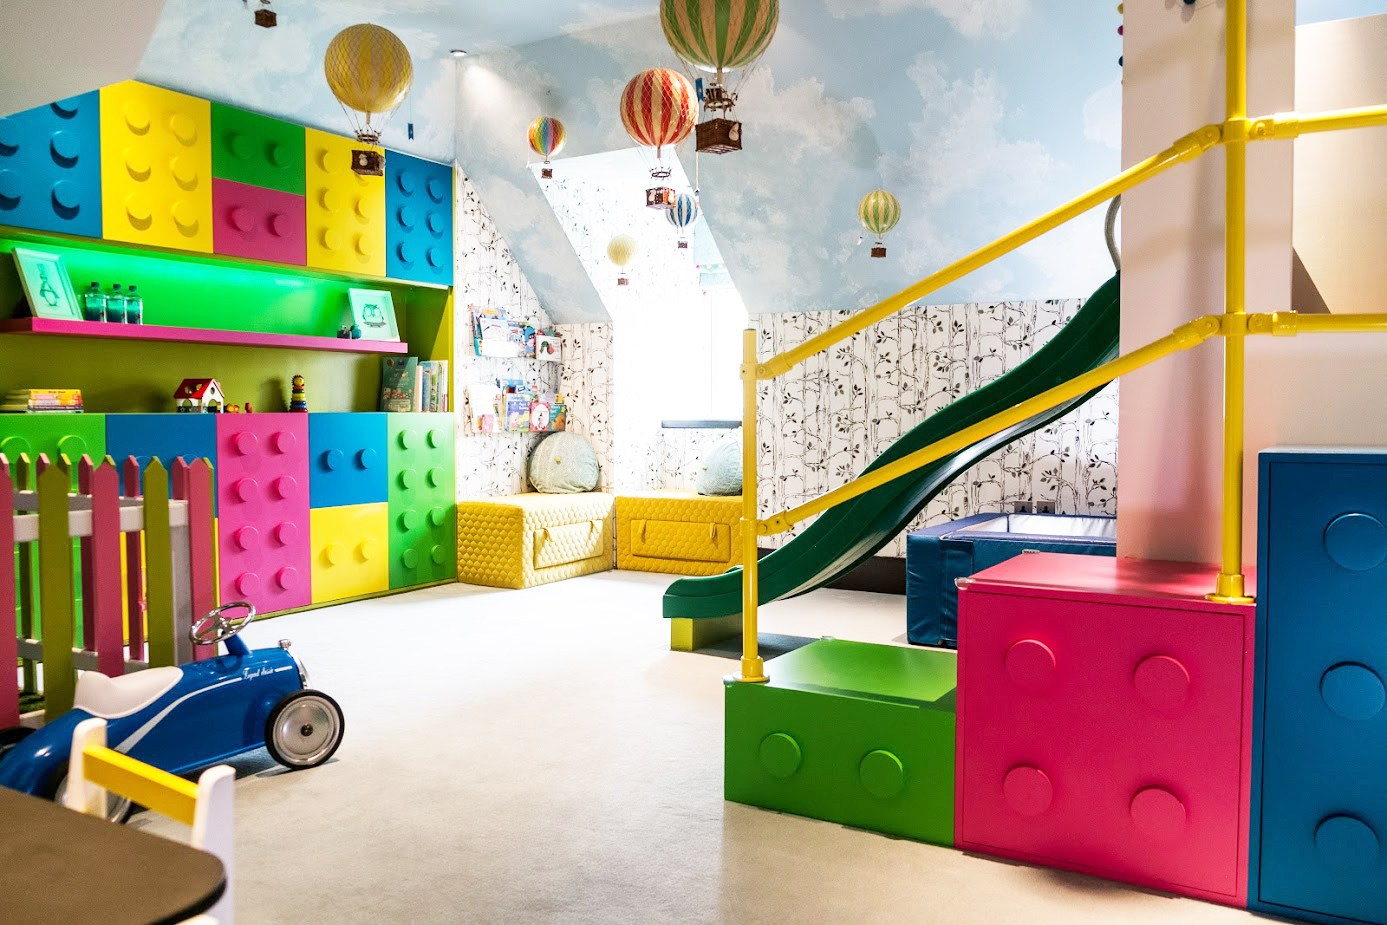 Lego storage playroom ideas